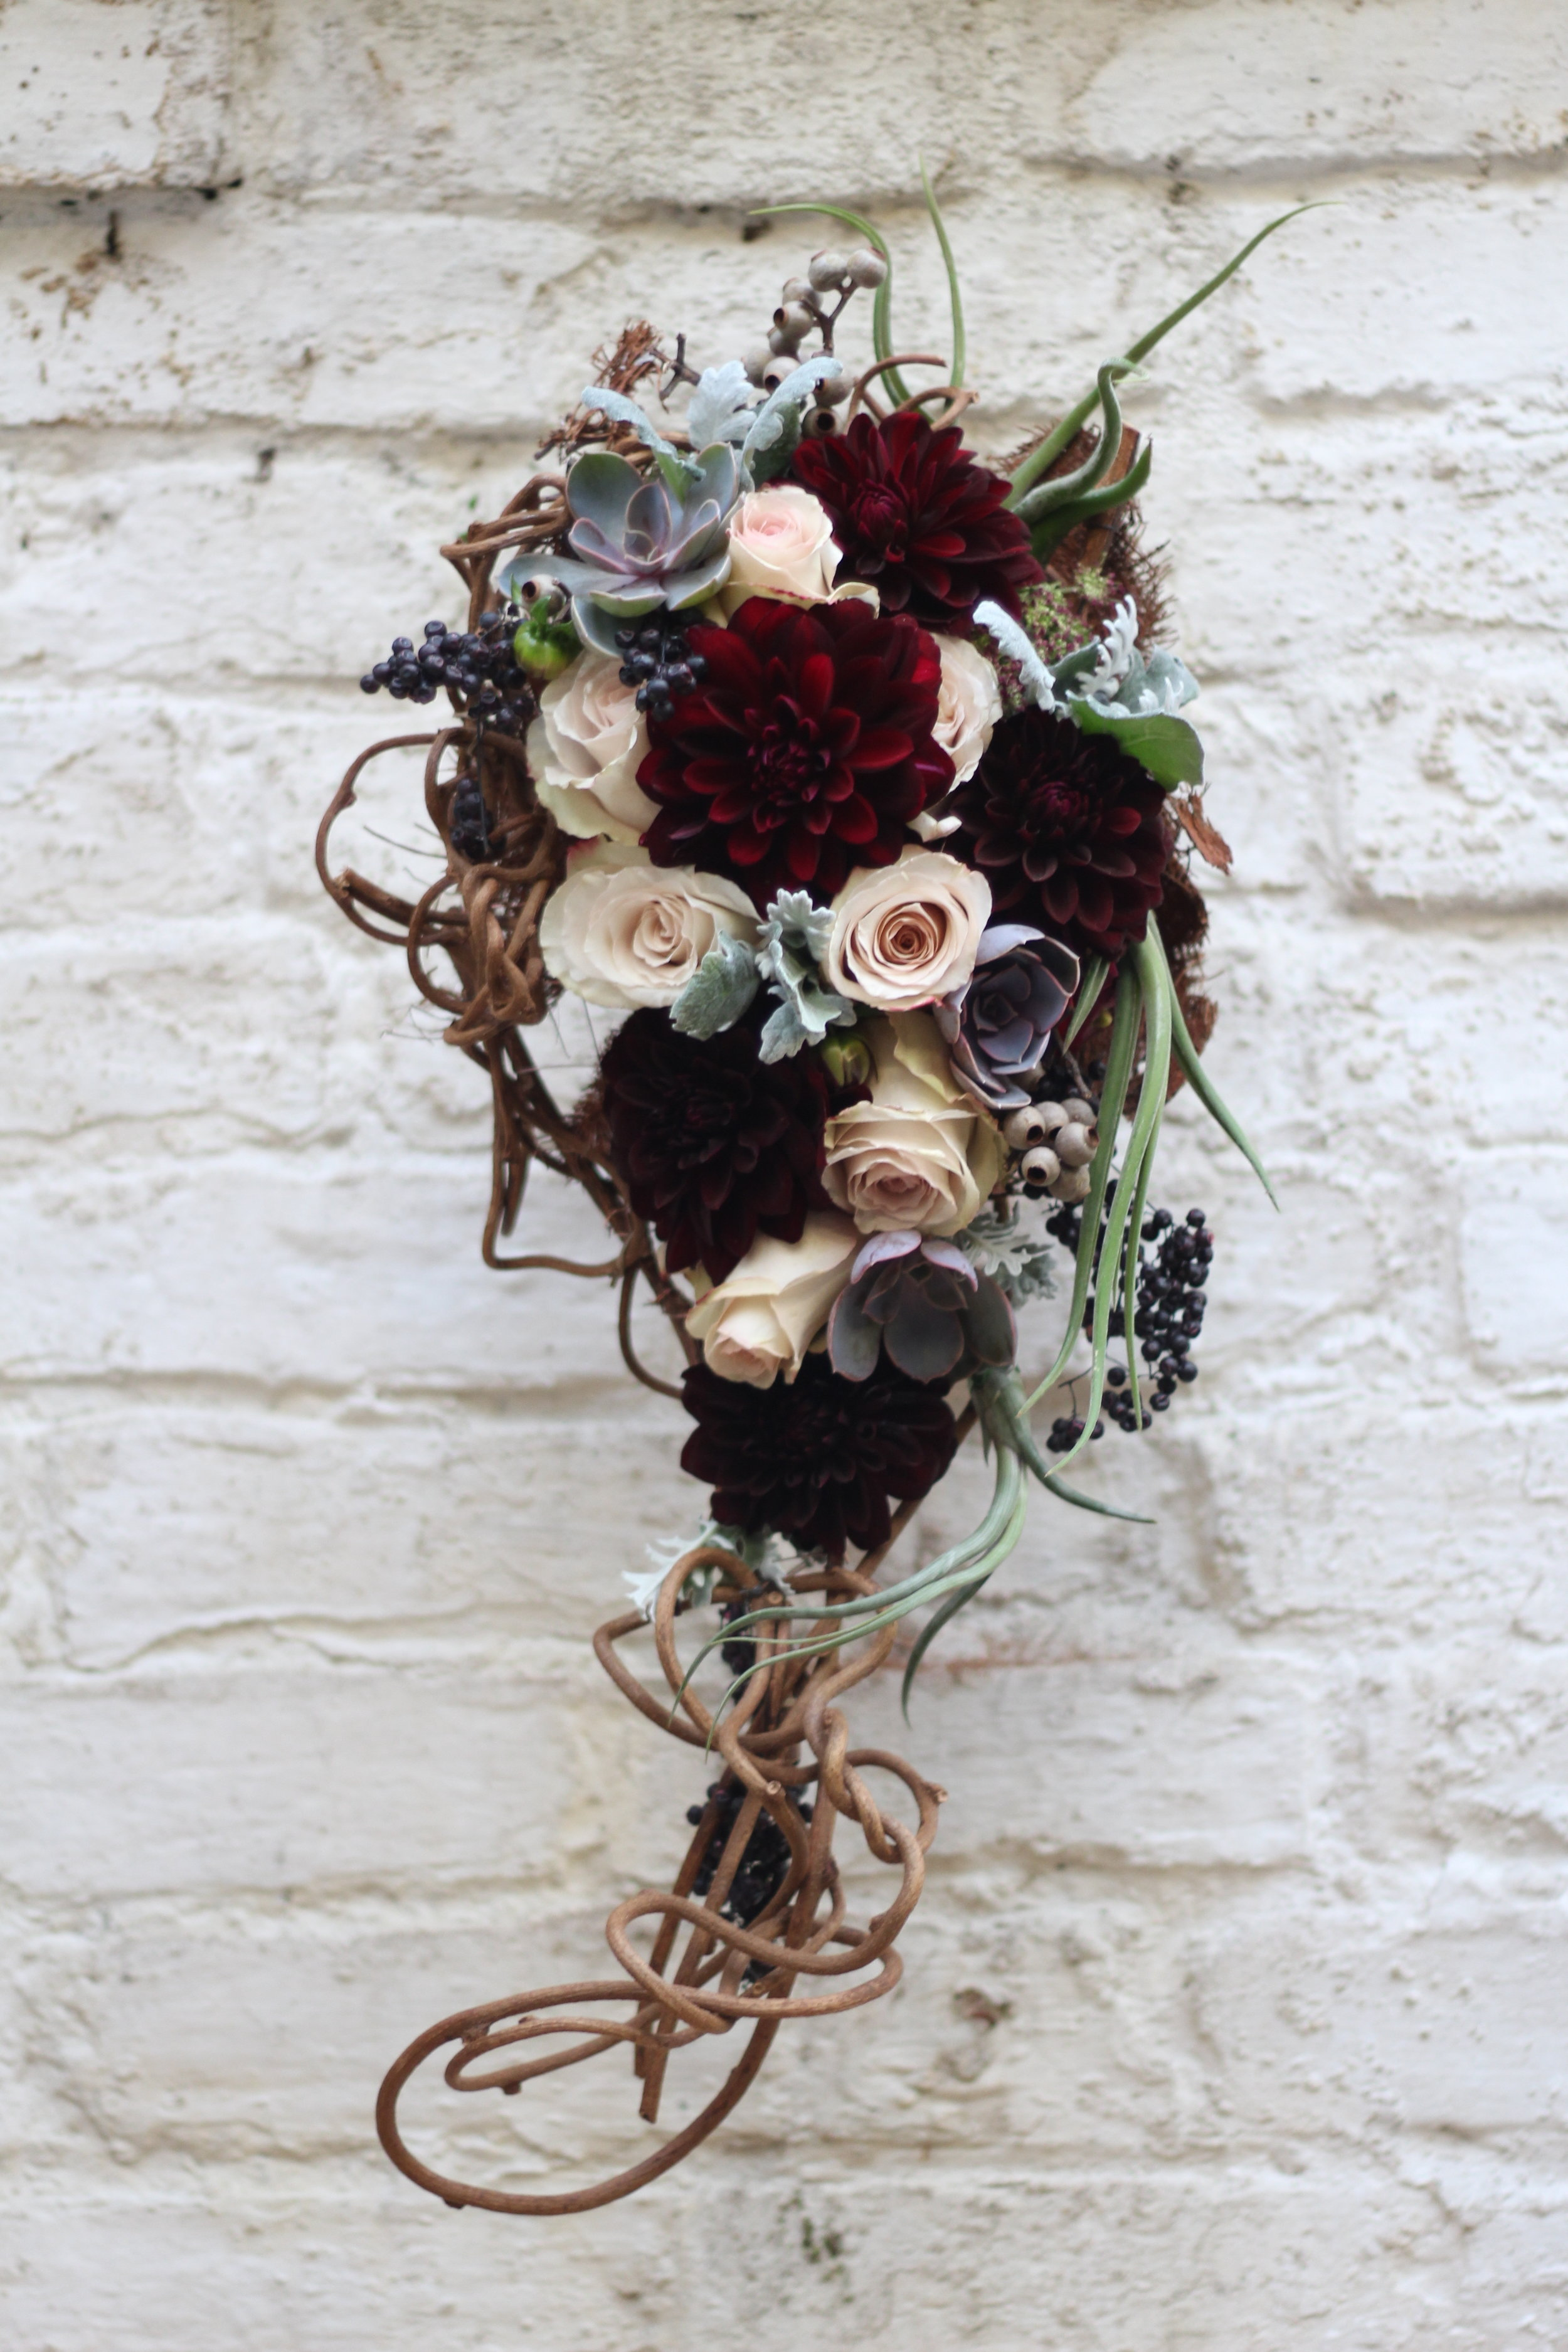 Becca's Bridal bouquet  - one of my kiwi vine and copper mesh frames all hand made and filled with what used to be my guilty pleasure - Dahlia - but luckily styles have changed once more and I now feel there is nothing to feel guilty about.